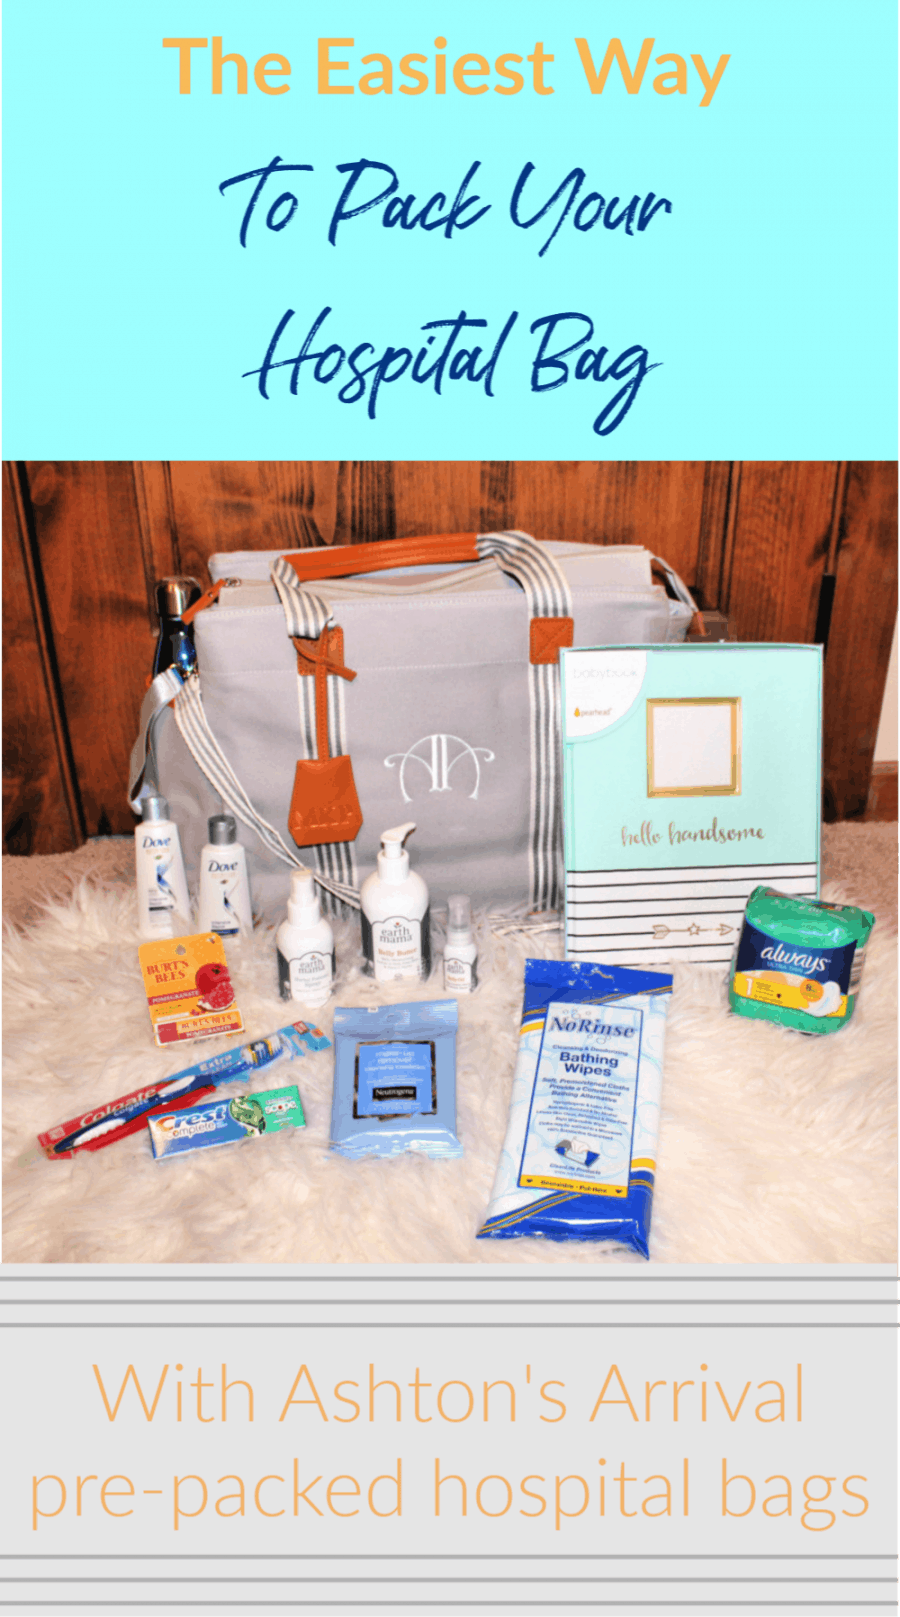 The Easiest Way To Pack Your Hospital Bag